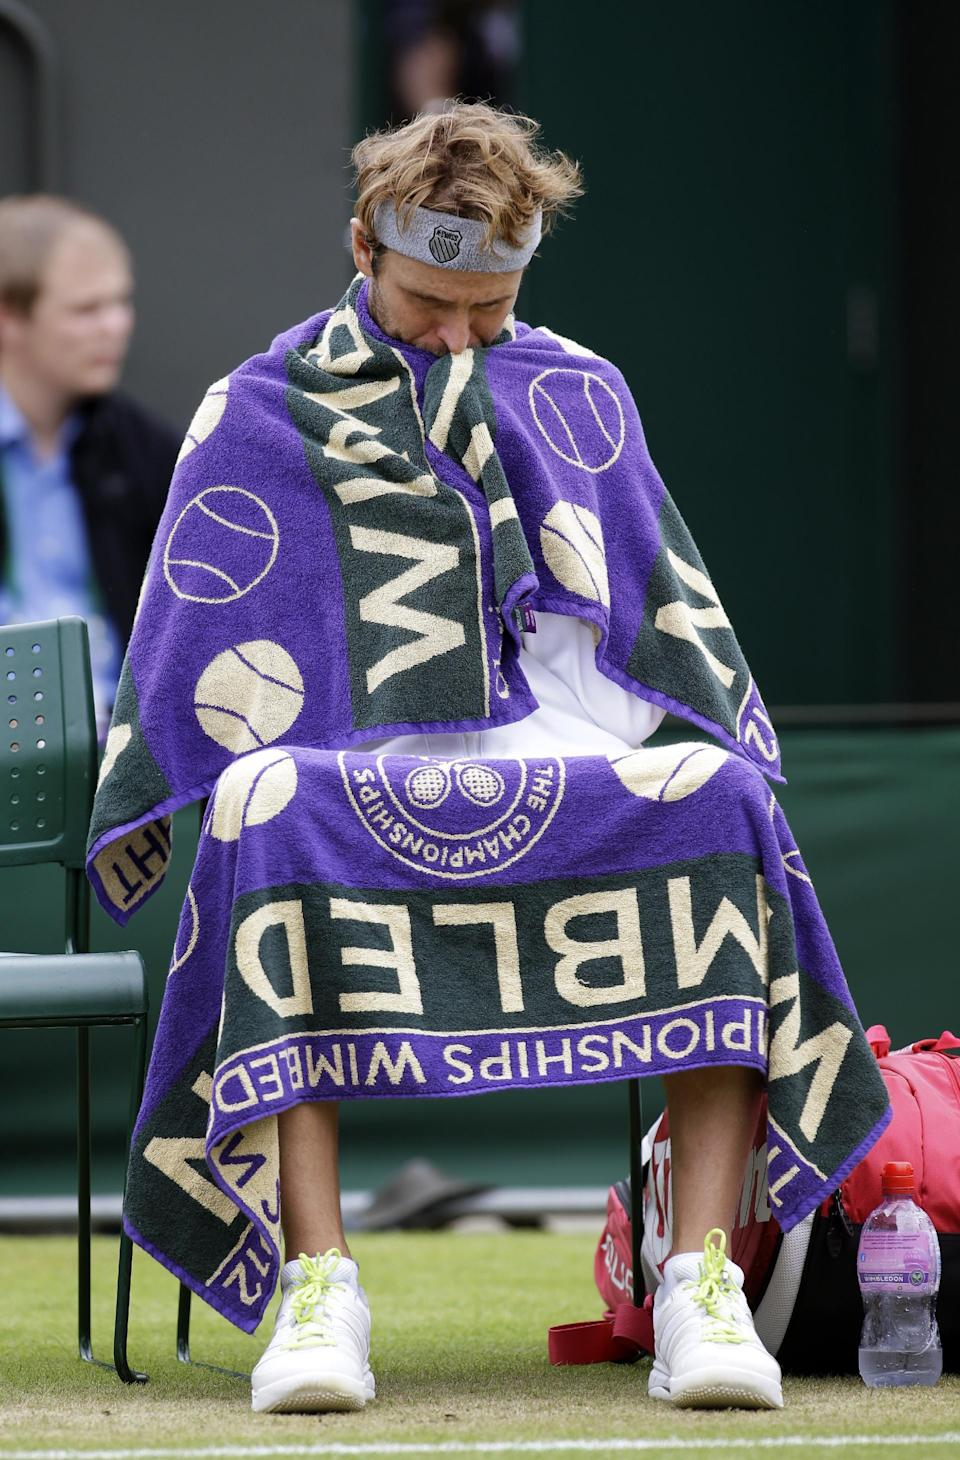 Mardy Fish of the United States waits as Jo-Wilfried Tsonga of France is checked by a trainer during a fourth round singles match at the All England Lawn Tennis Championships at Wimbledon, England, Tuesday, July 3, 2012. (AP Photo/Sang Tan)